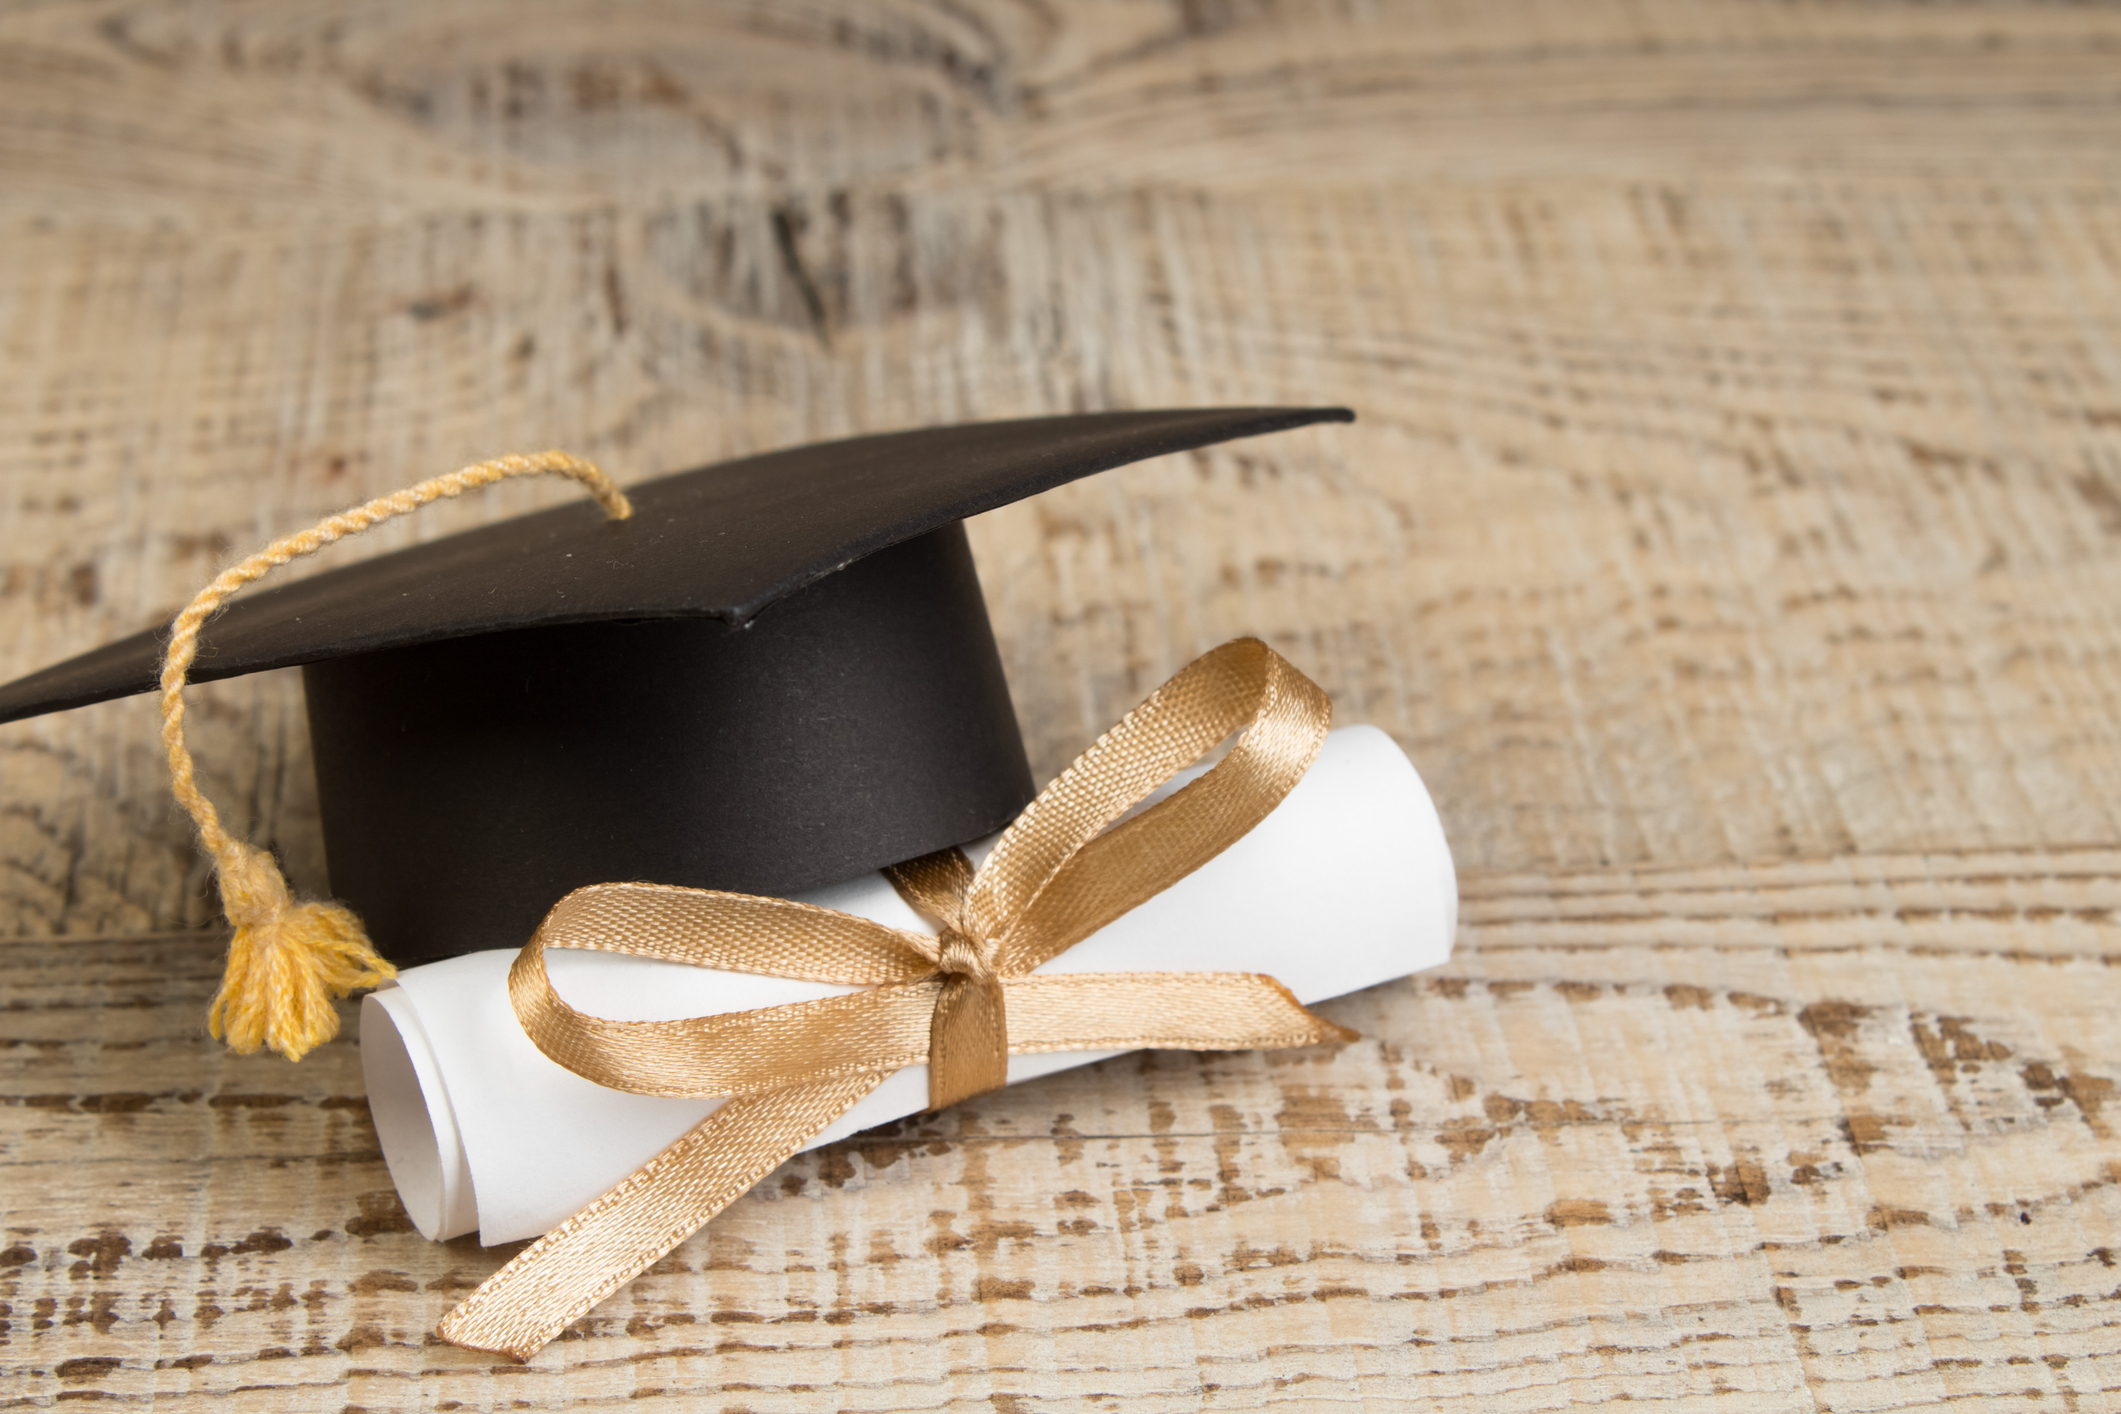 Graduation Gifts for Seniors That are Actually Meaningful  (and Don't Break the Bank!)